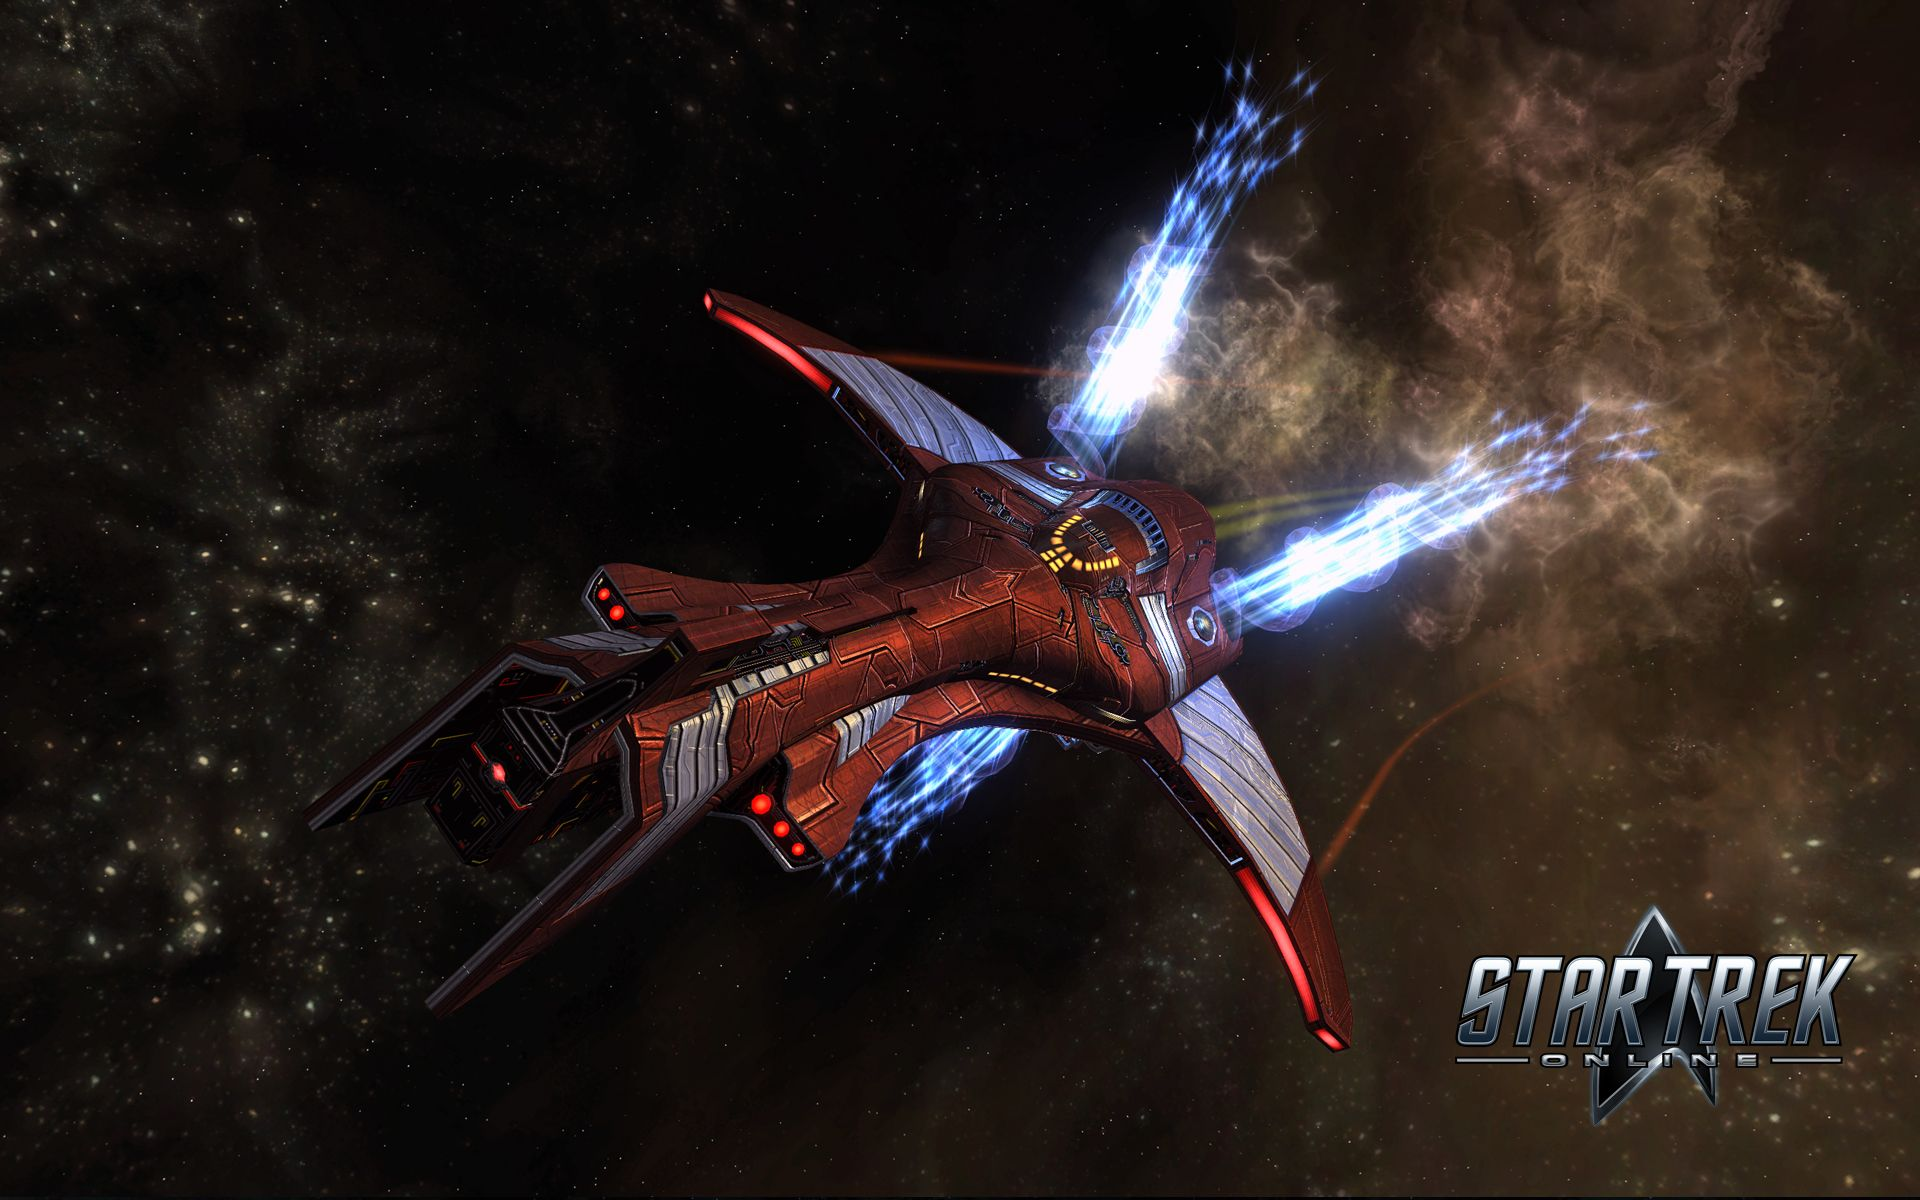 Check out our 172 Star Trek Wallpapers and Backgrounds and